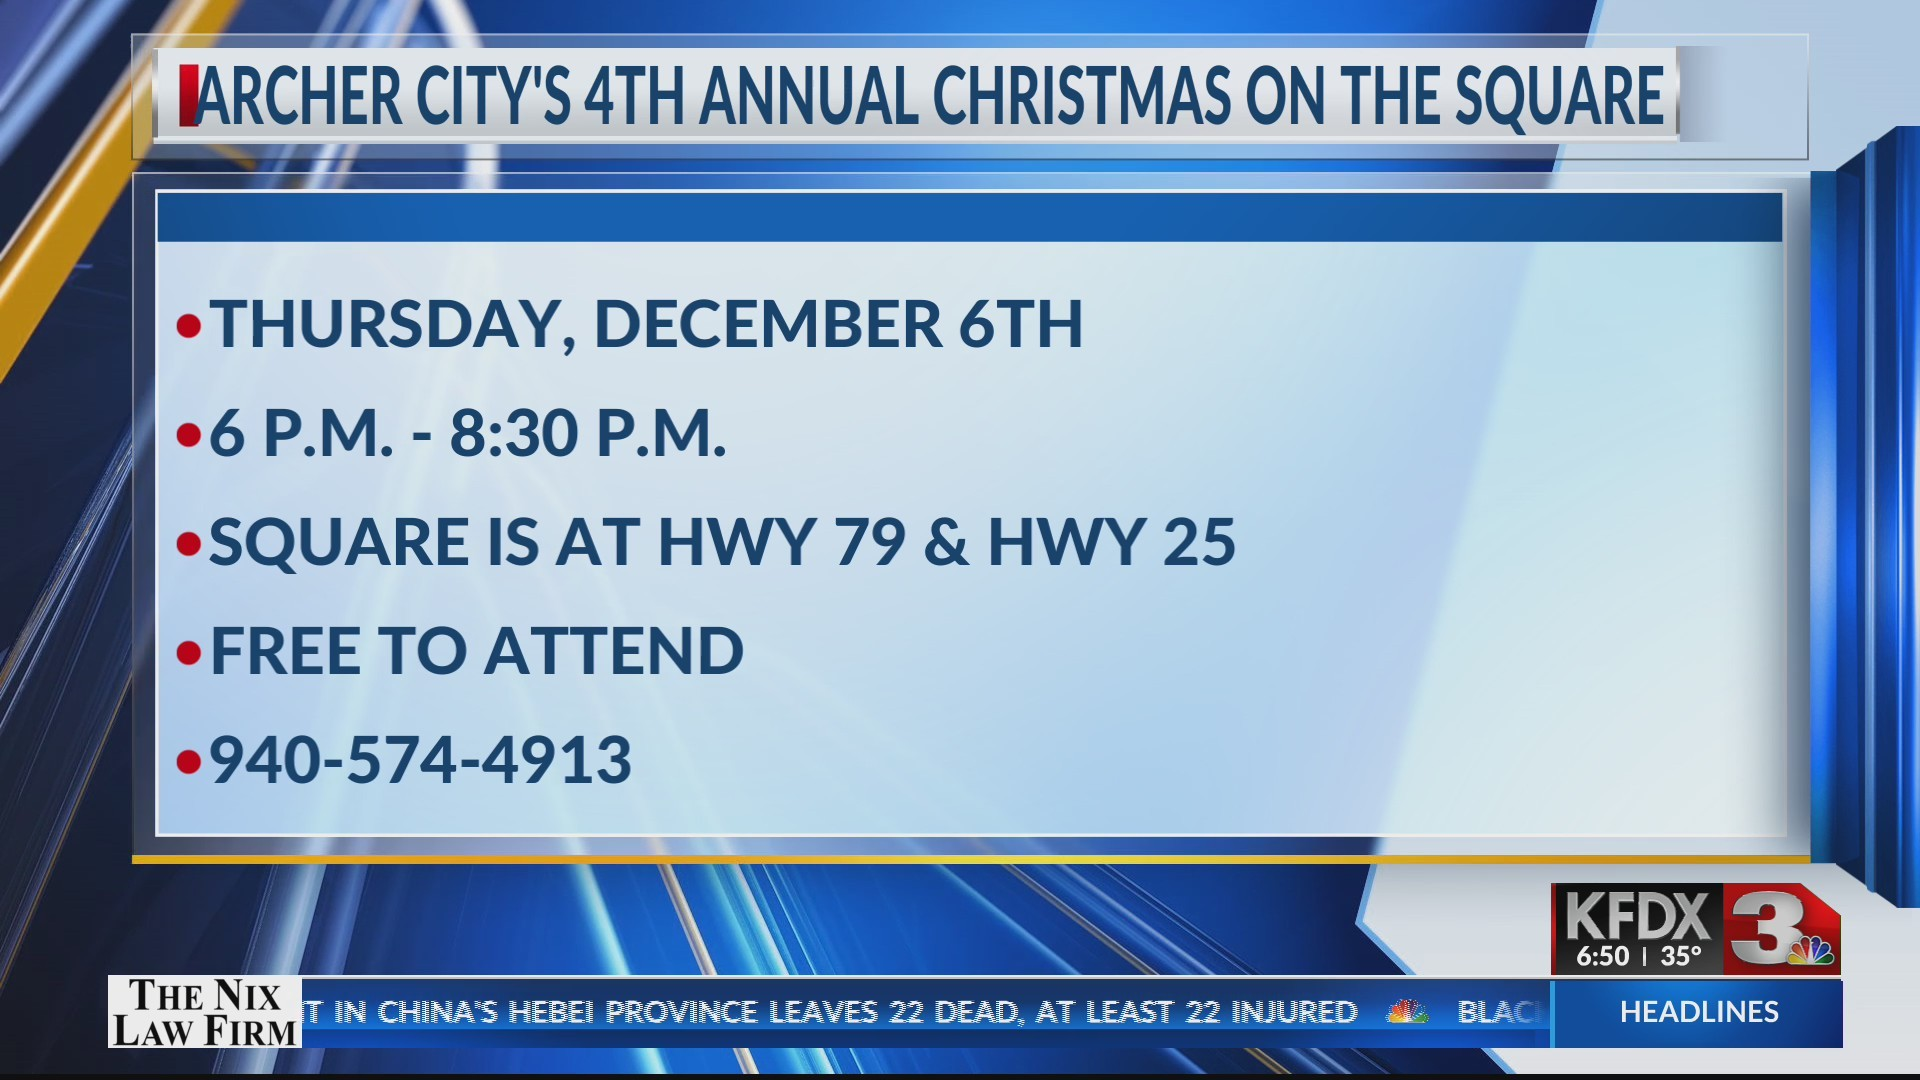 4th Annual Archer City's Christmas on the Square